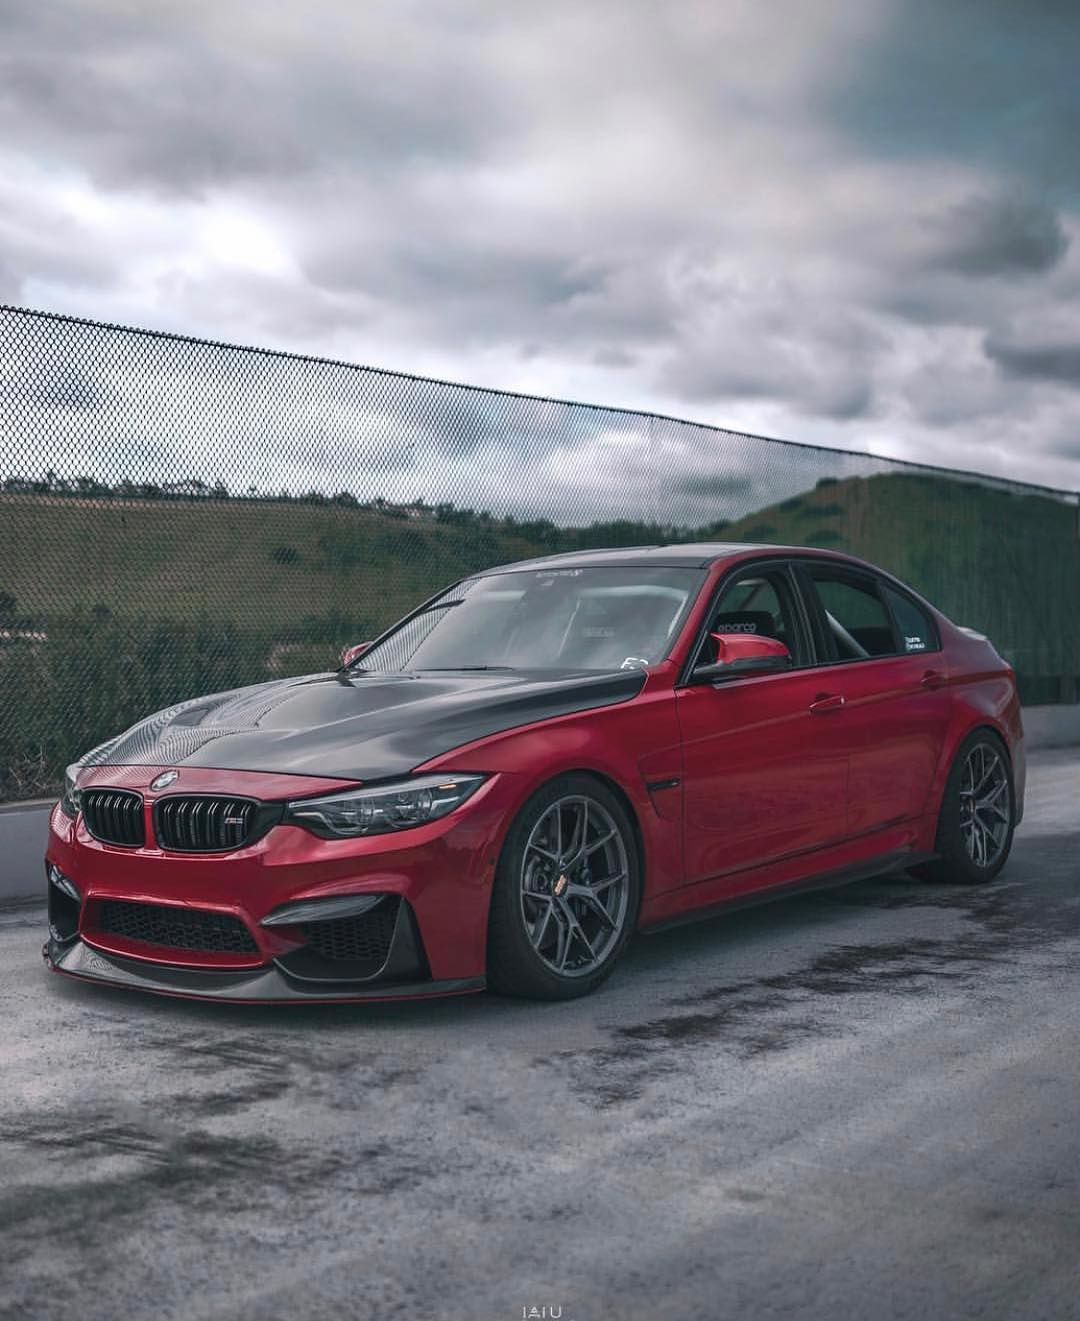 Bmw F80 M3 In Bmw Individual Imola Red Quietf80 With Images